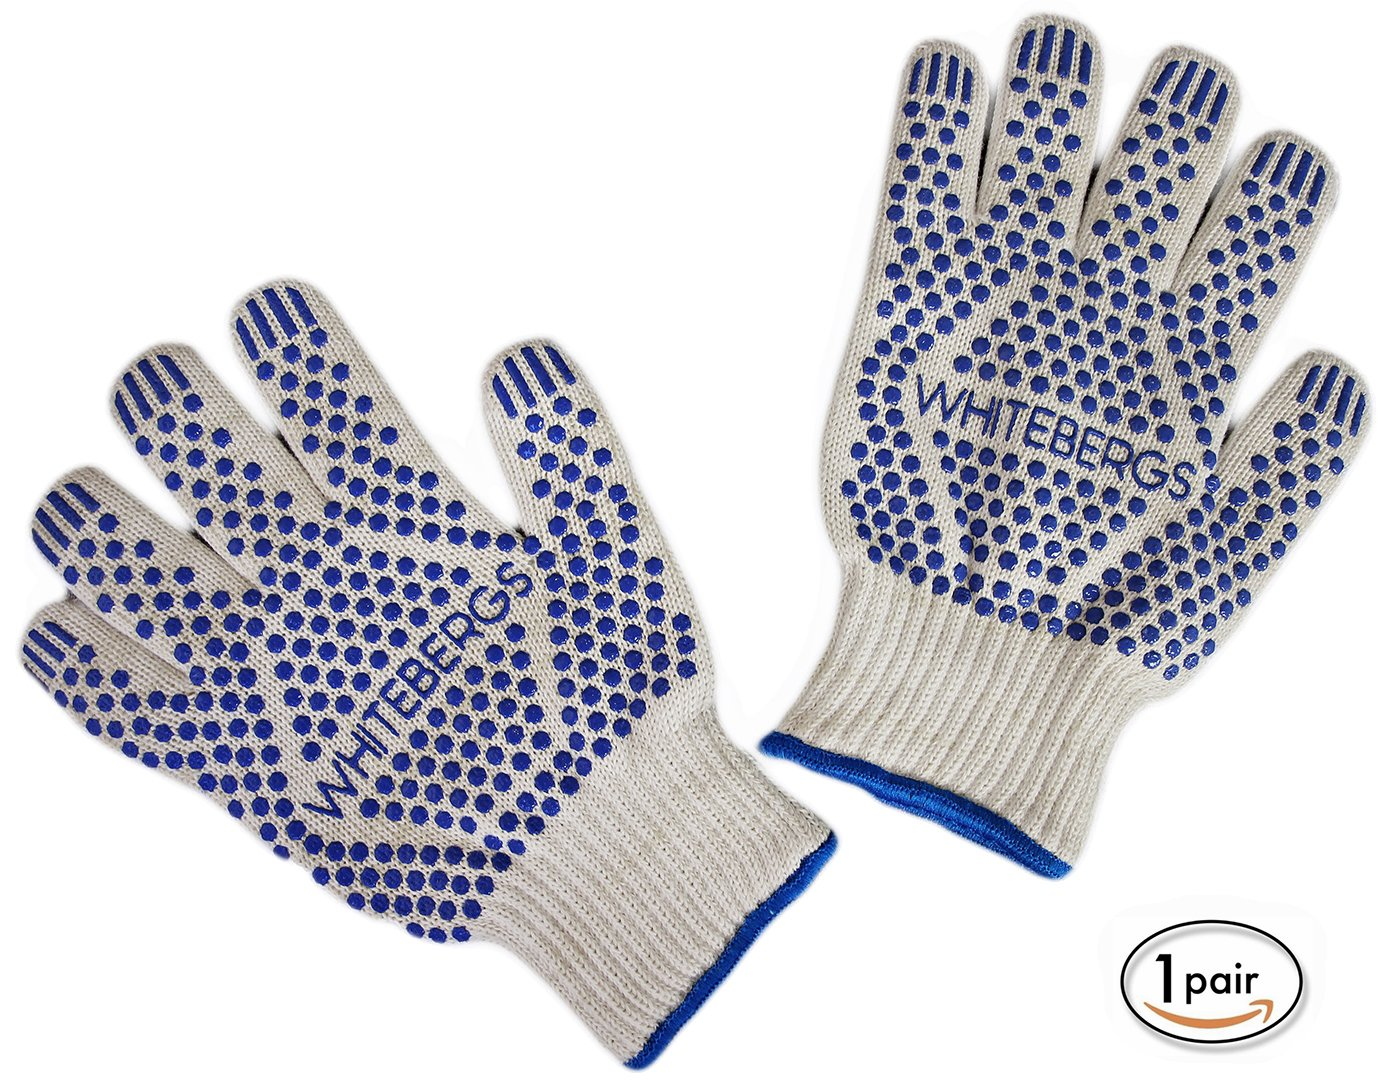 Whitebergs Heat Resistant Gloves (B01AW8UV8U)